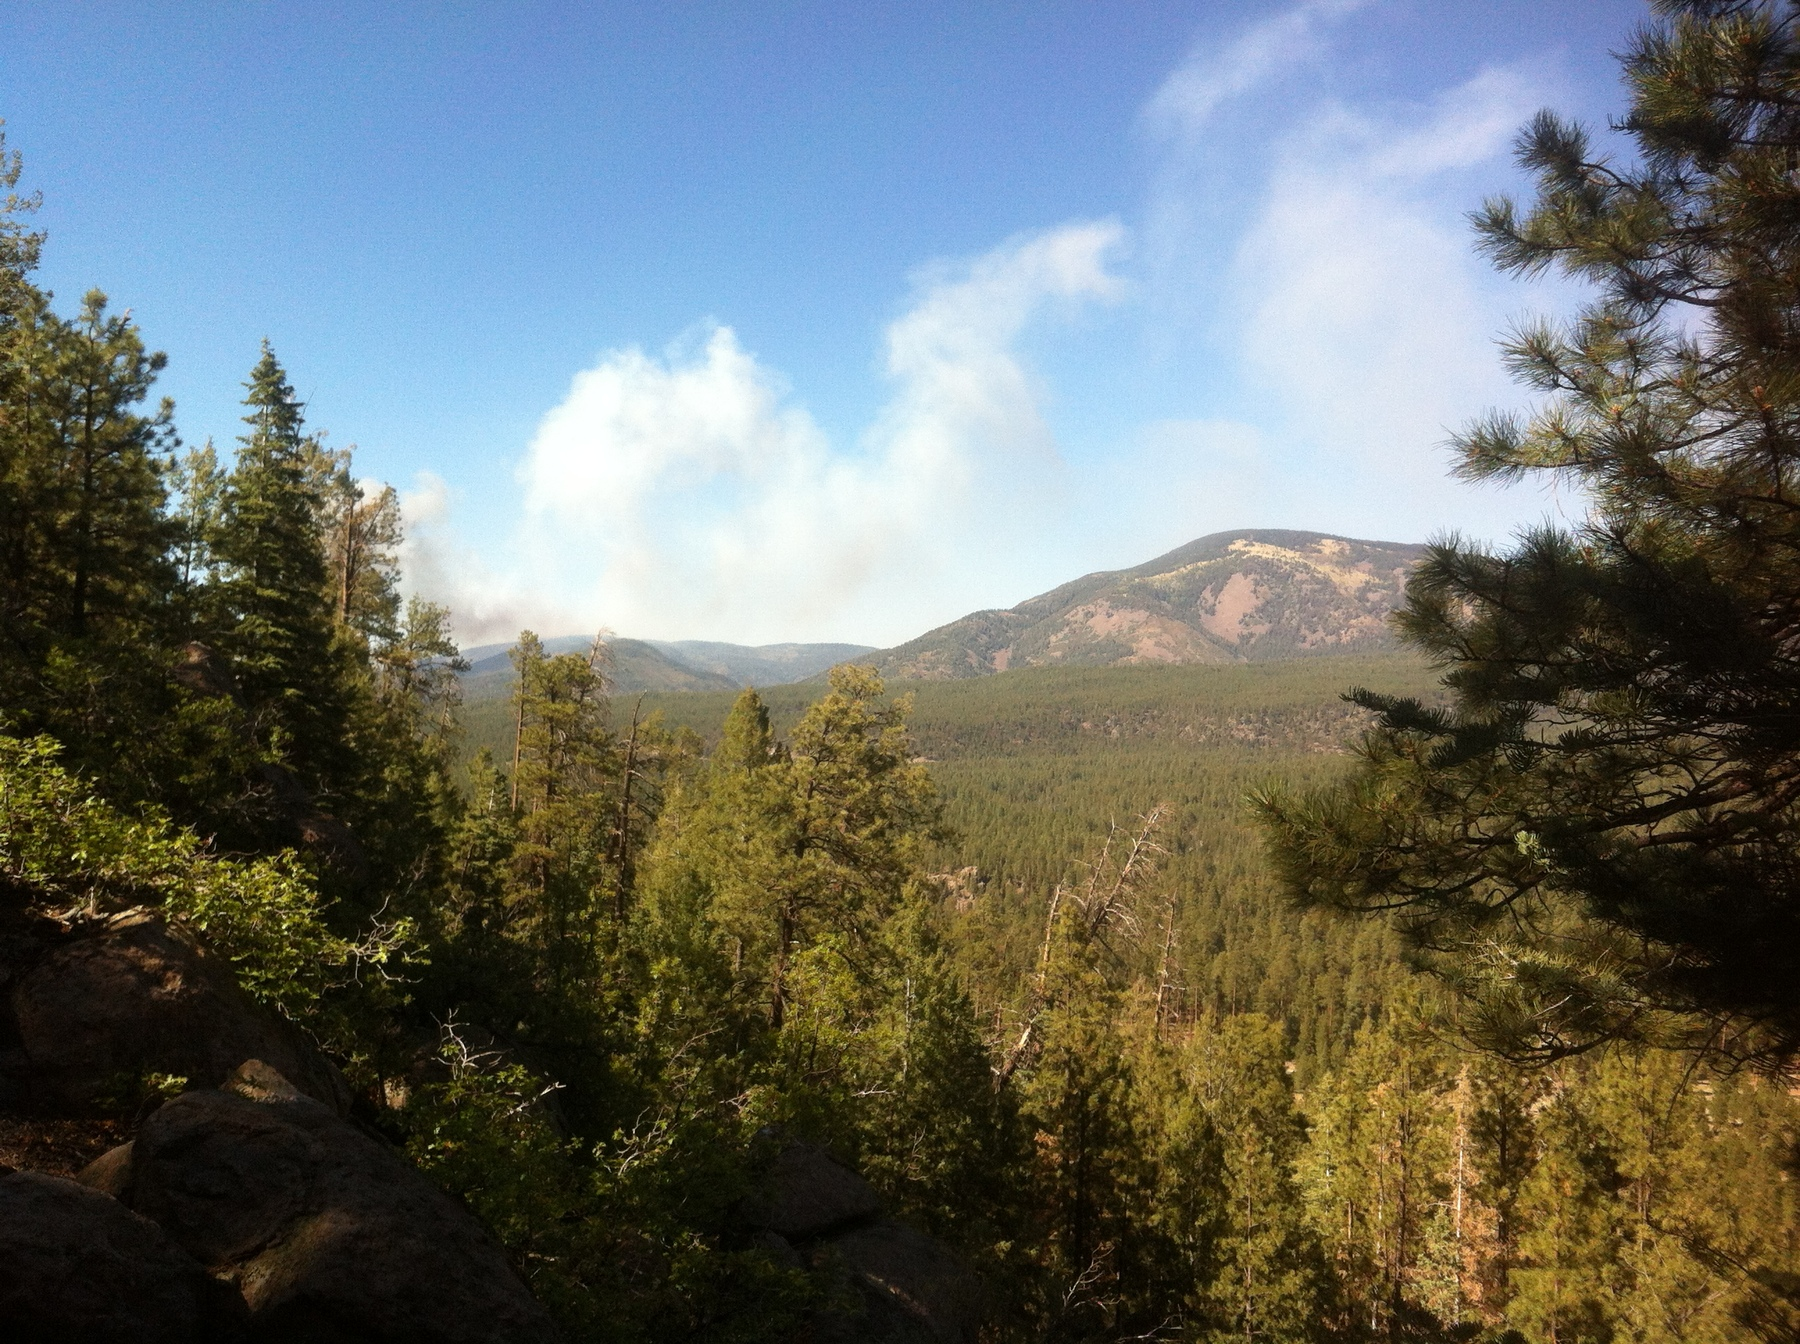 Smoke from May 31, 2013, the first day of the Thompson Ridge fire in the Jemez Mountains, New Mexico. This fire grew to an area of over 23,000 acres and engulfed much of Wâavêmâ (Redondo Peak), a mountain held sacred by the people of Jemez Pueblo.